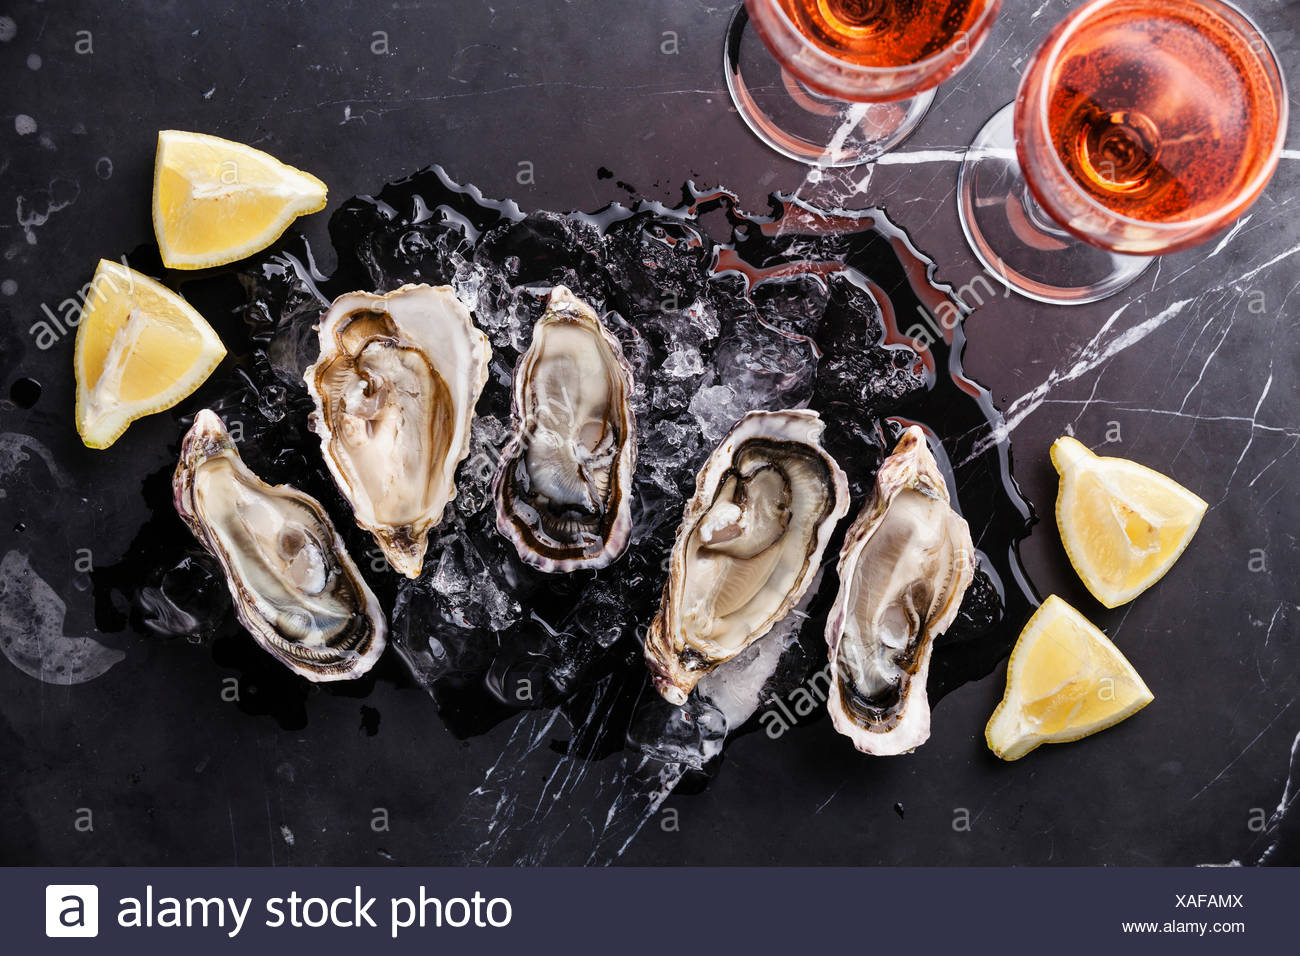 Opened Oysters on dark marble background with ice, lemon and rose wine - Stock Image